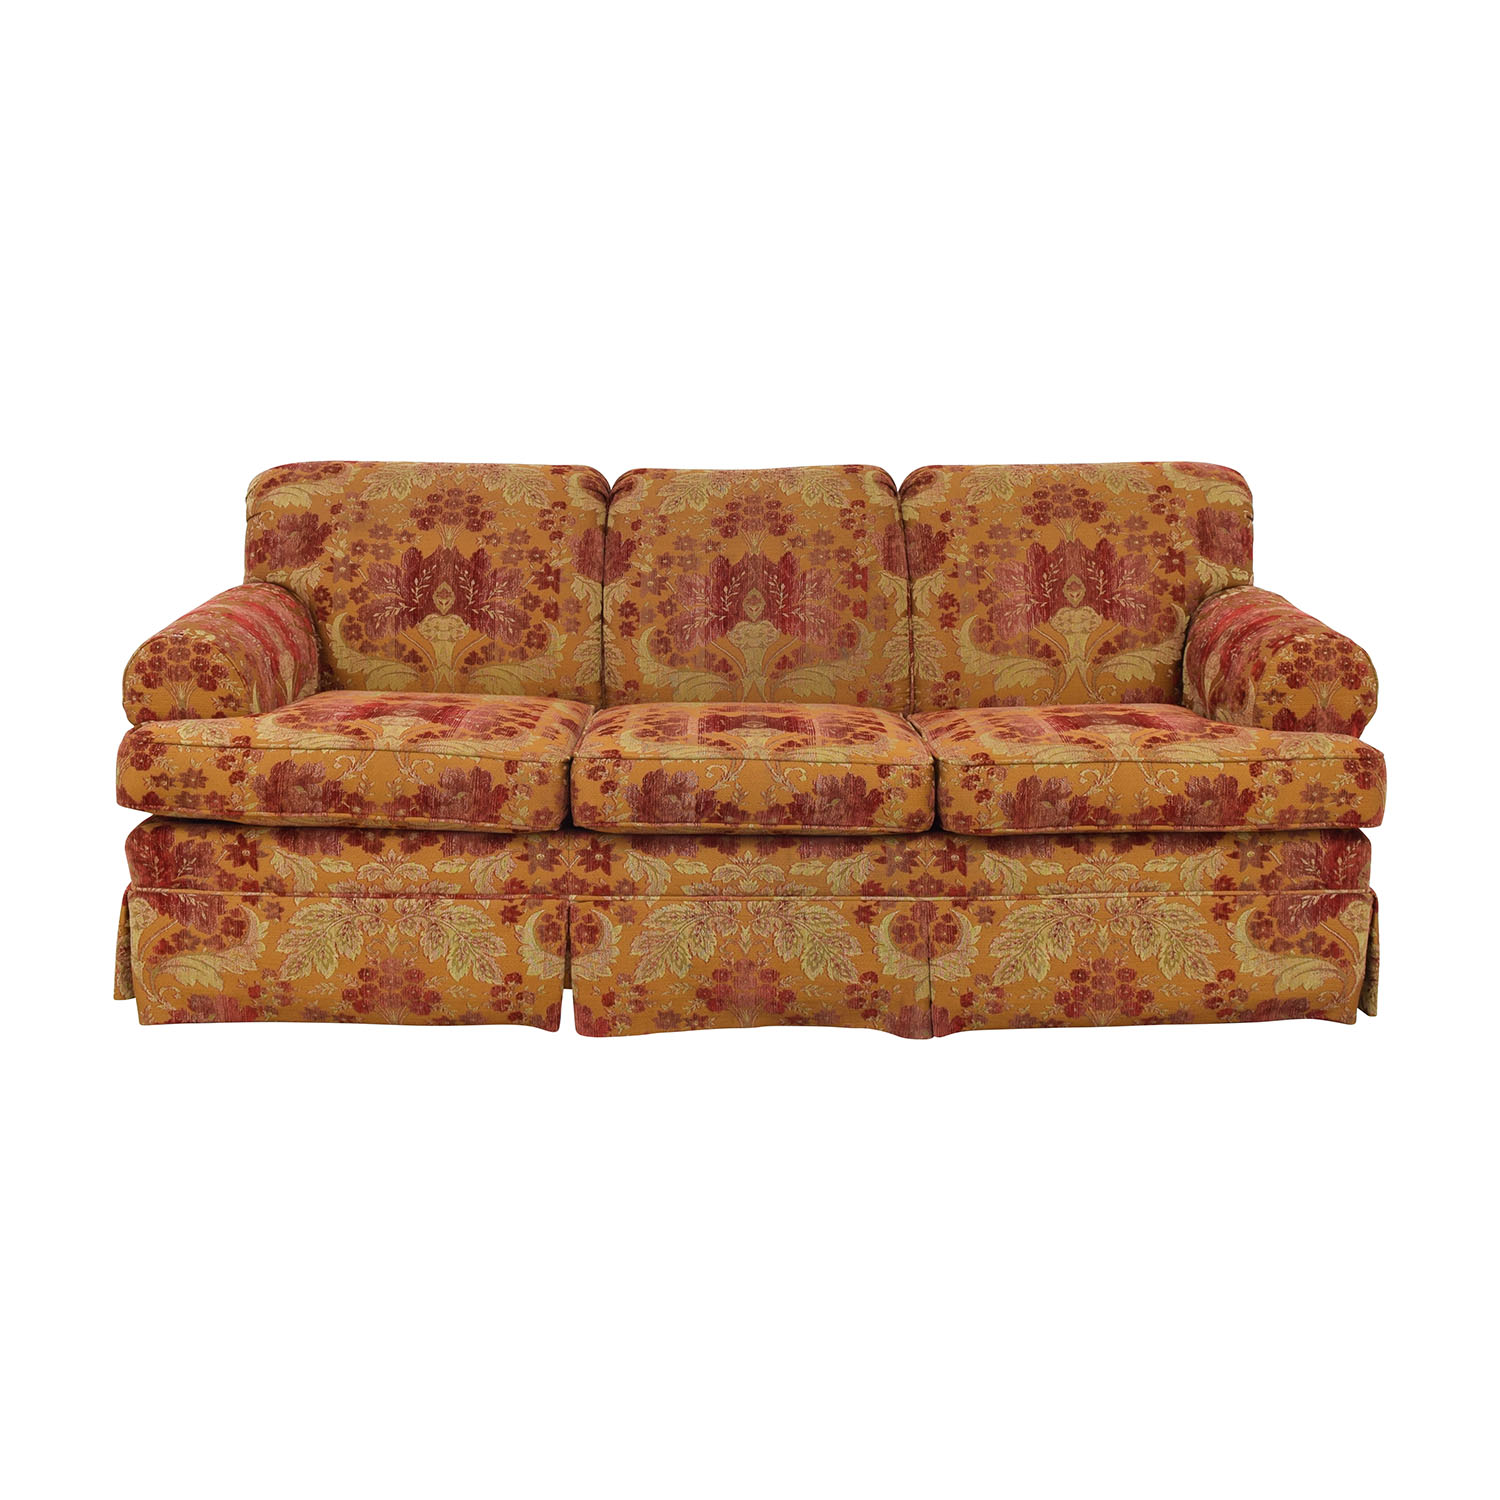 Ethan Allen Ethan Allen Three Seat Sofa nj